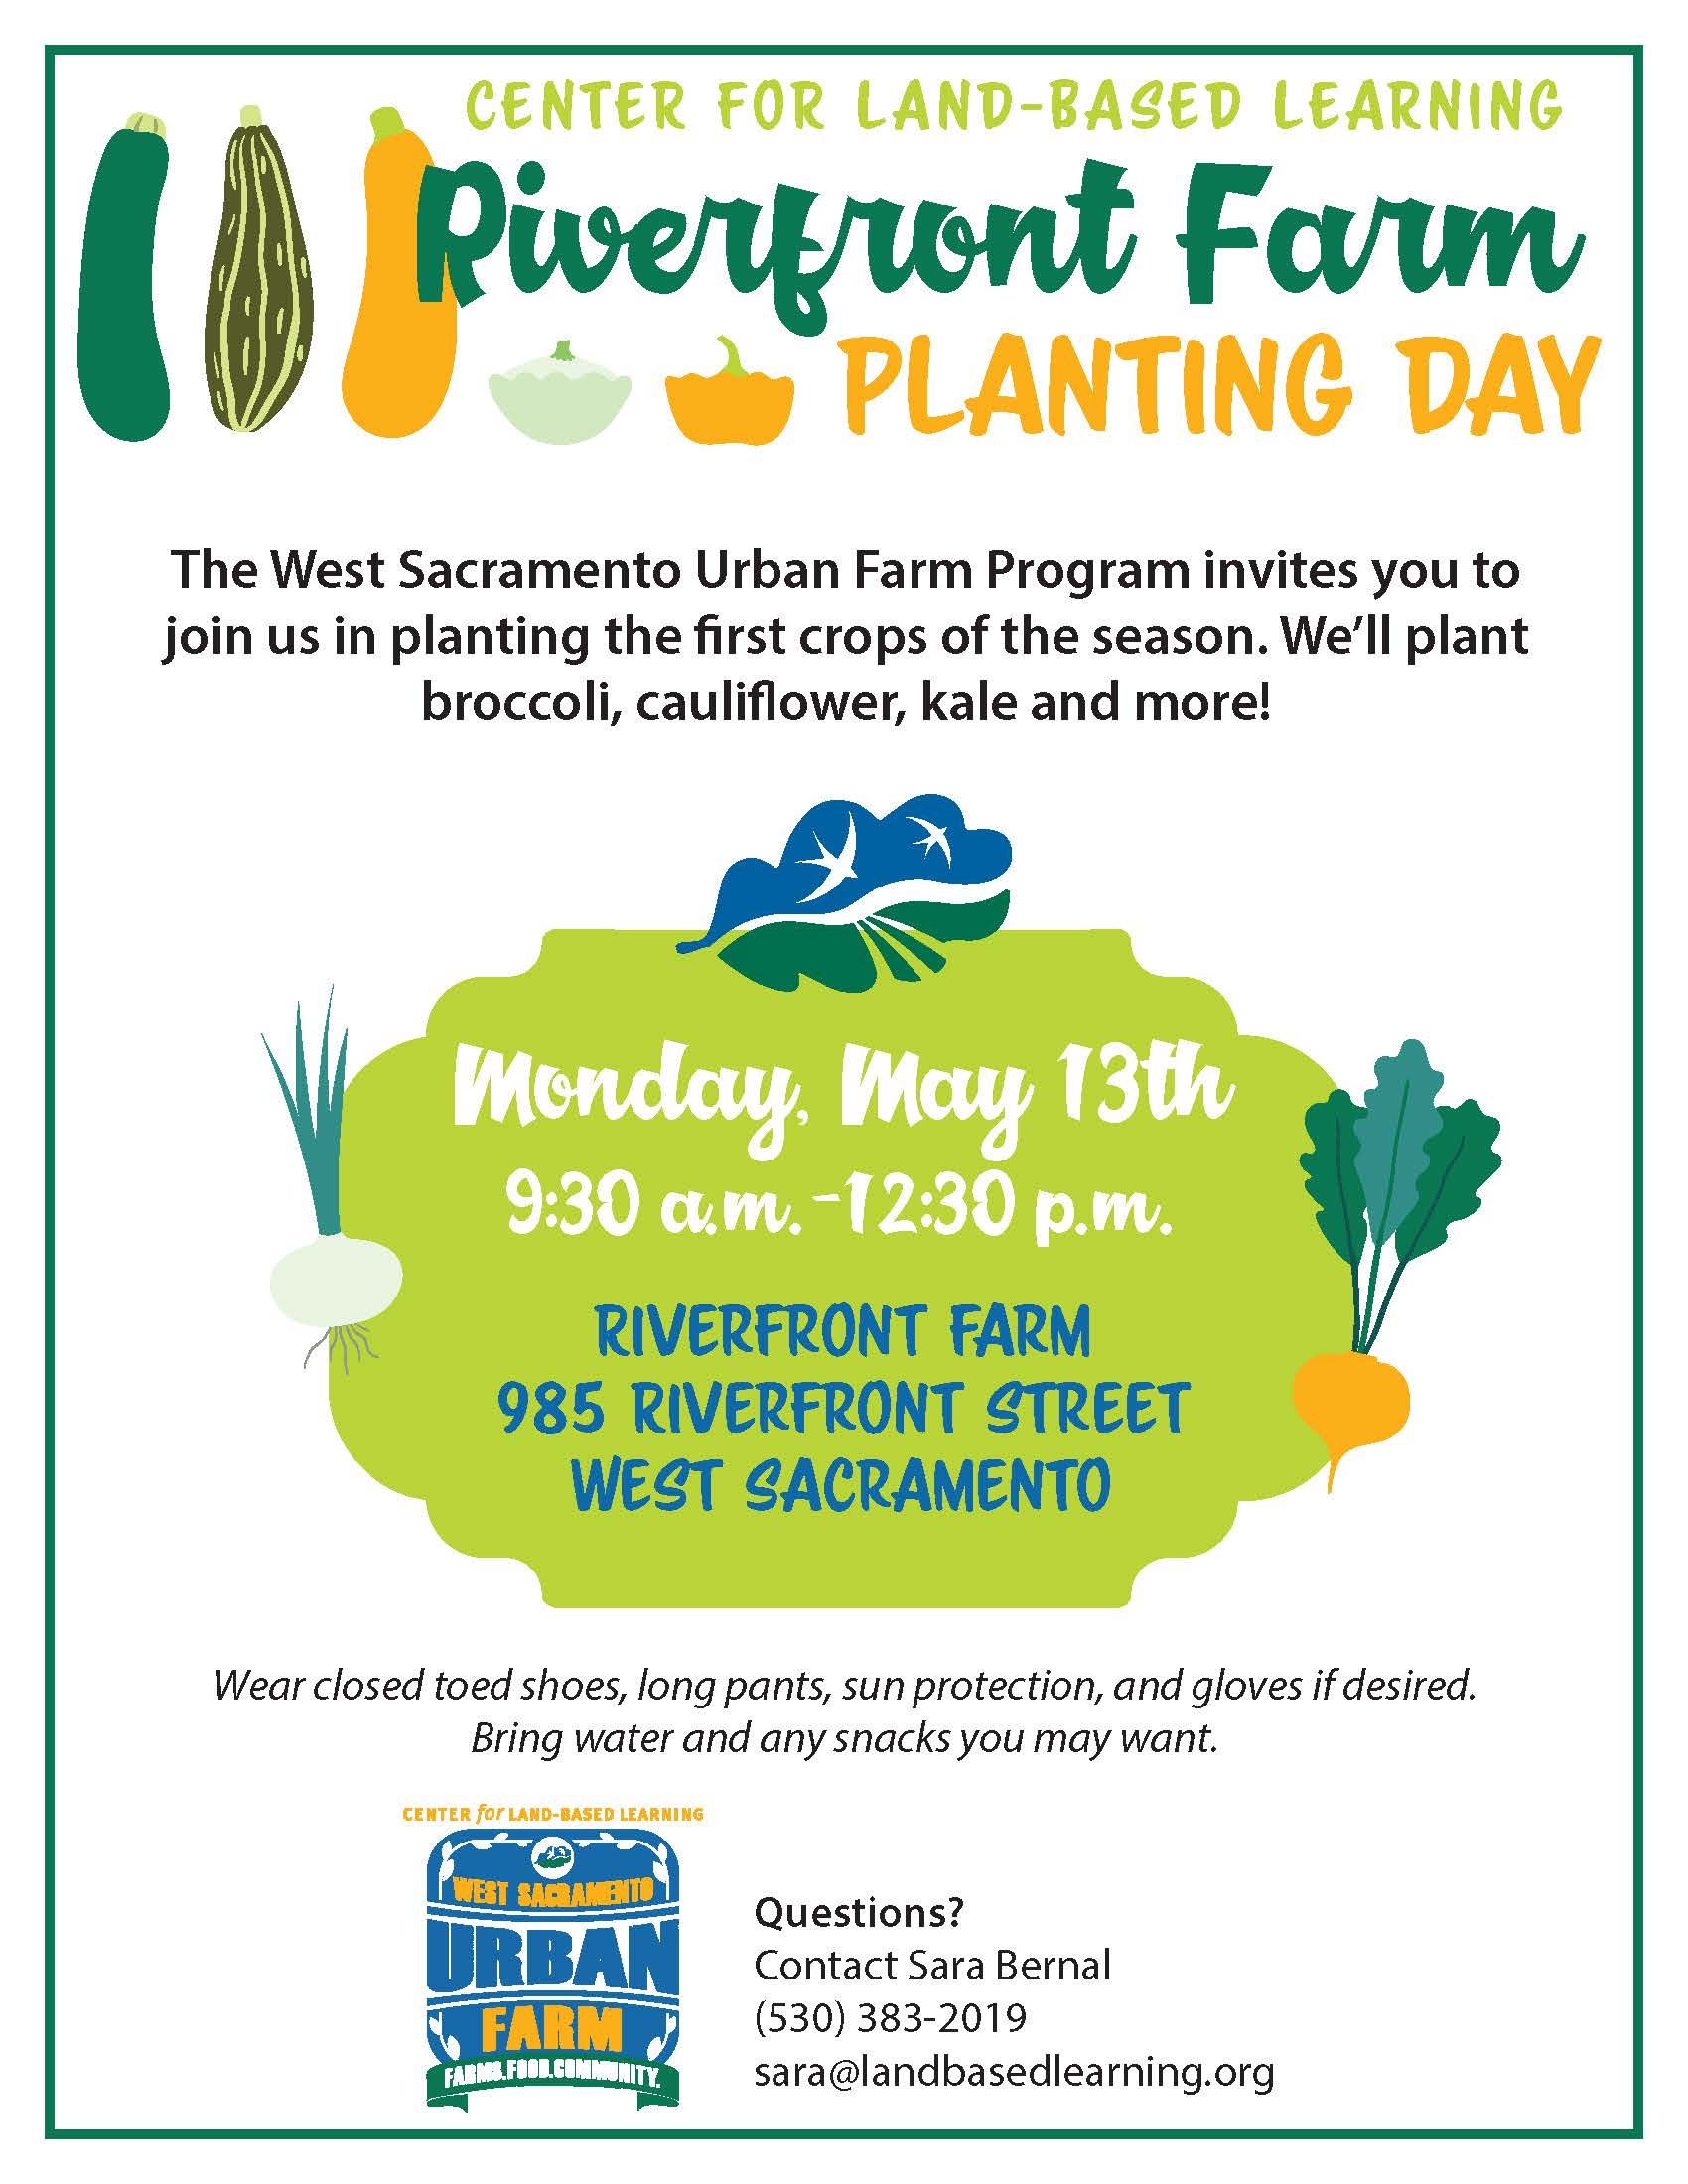 Riverfront farm planting day is may 13th at 9:30